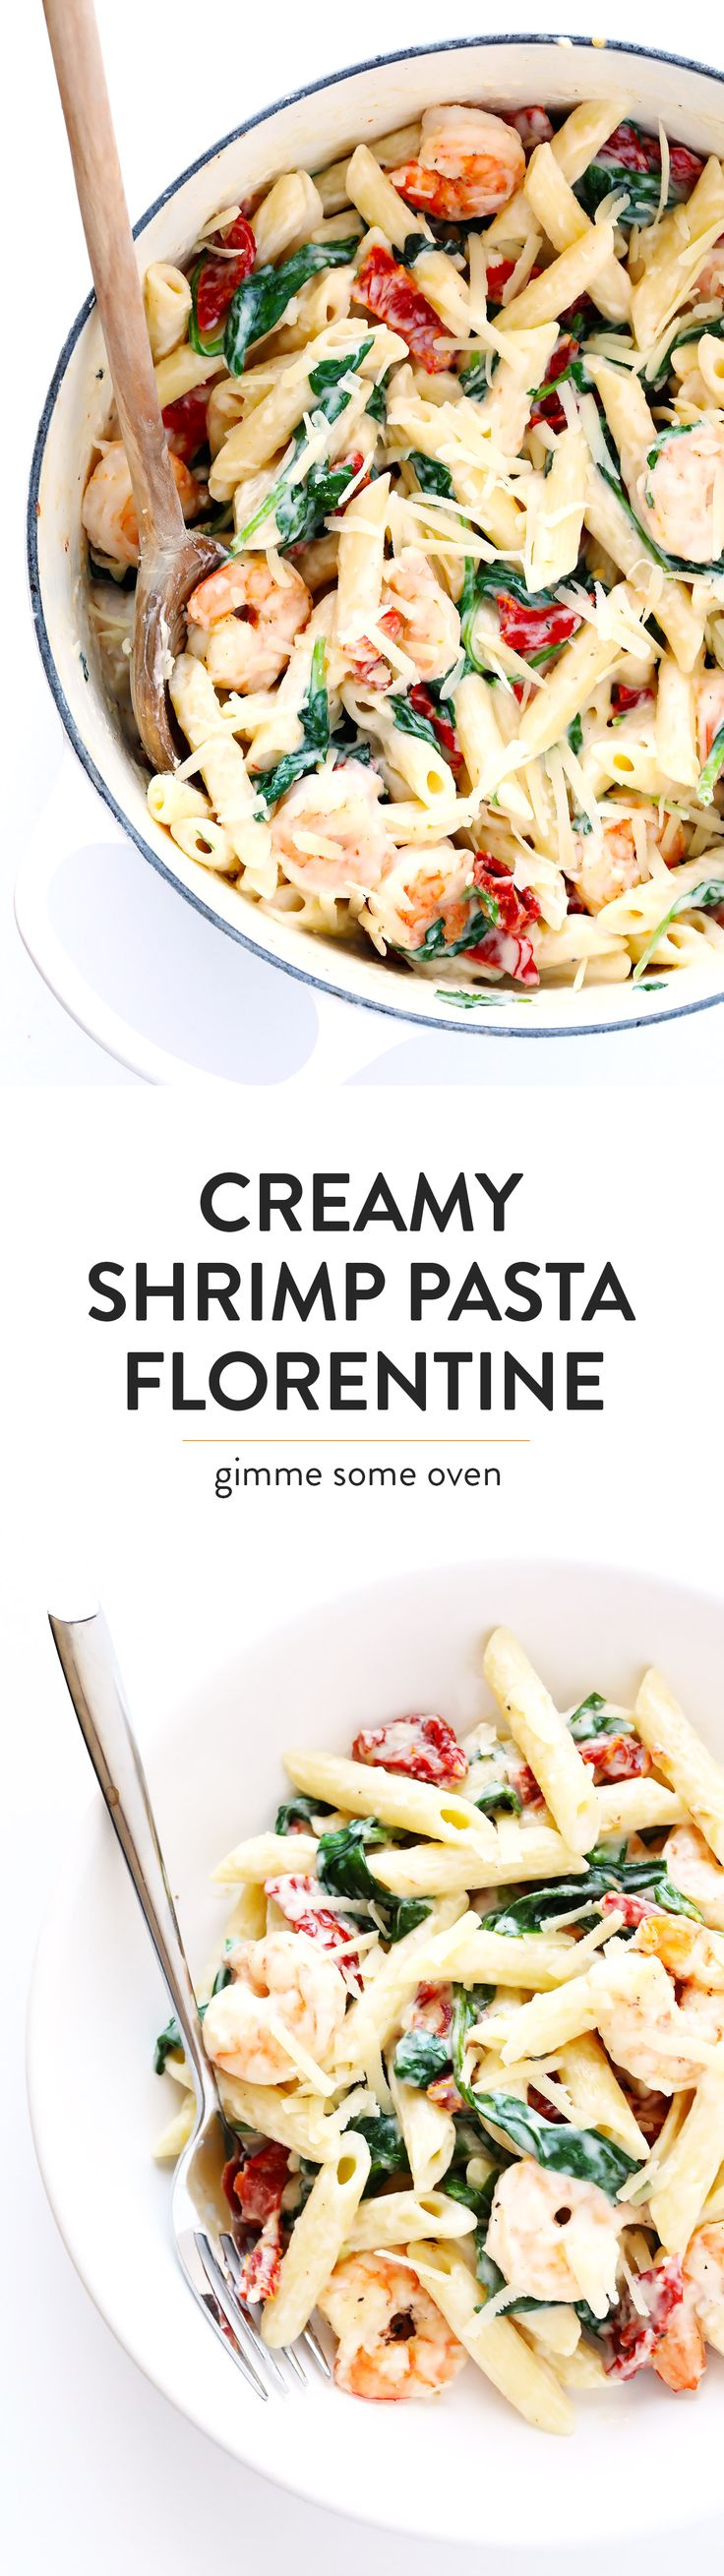 This AMAZING Creamy Shrimp Florentine Pasta recipe is quick and easy to make, it's loaded up with sun-dried tomatoes and spinach and basil and shrimp, and tossed in a heavenly creamy garlic sauce.  A delicious and comforting dinner!! | gimmesomeoven.com